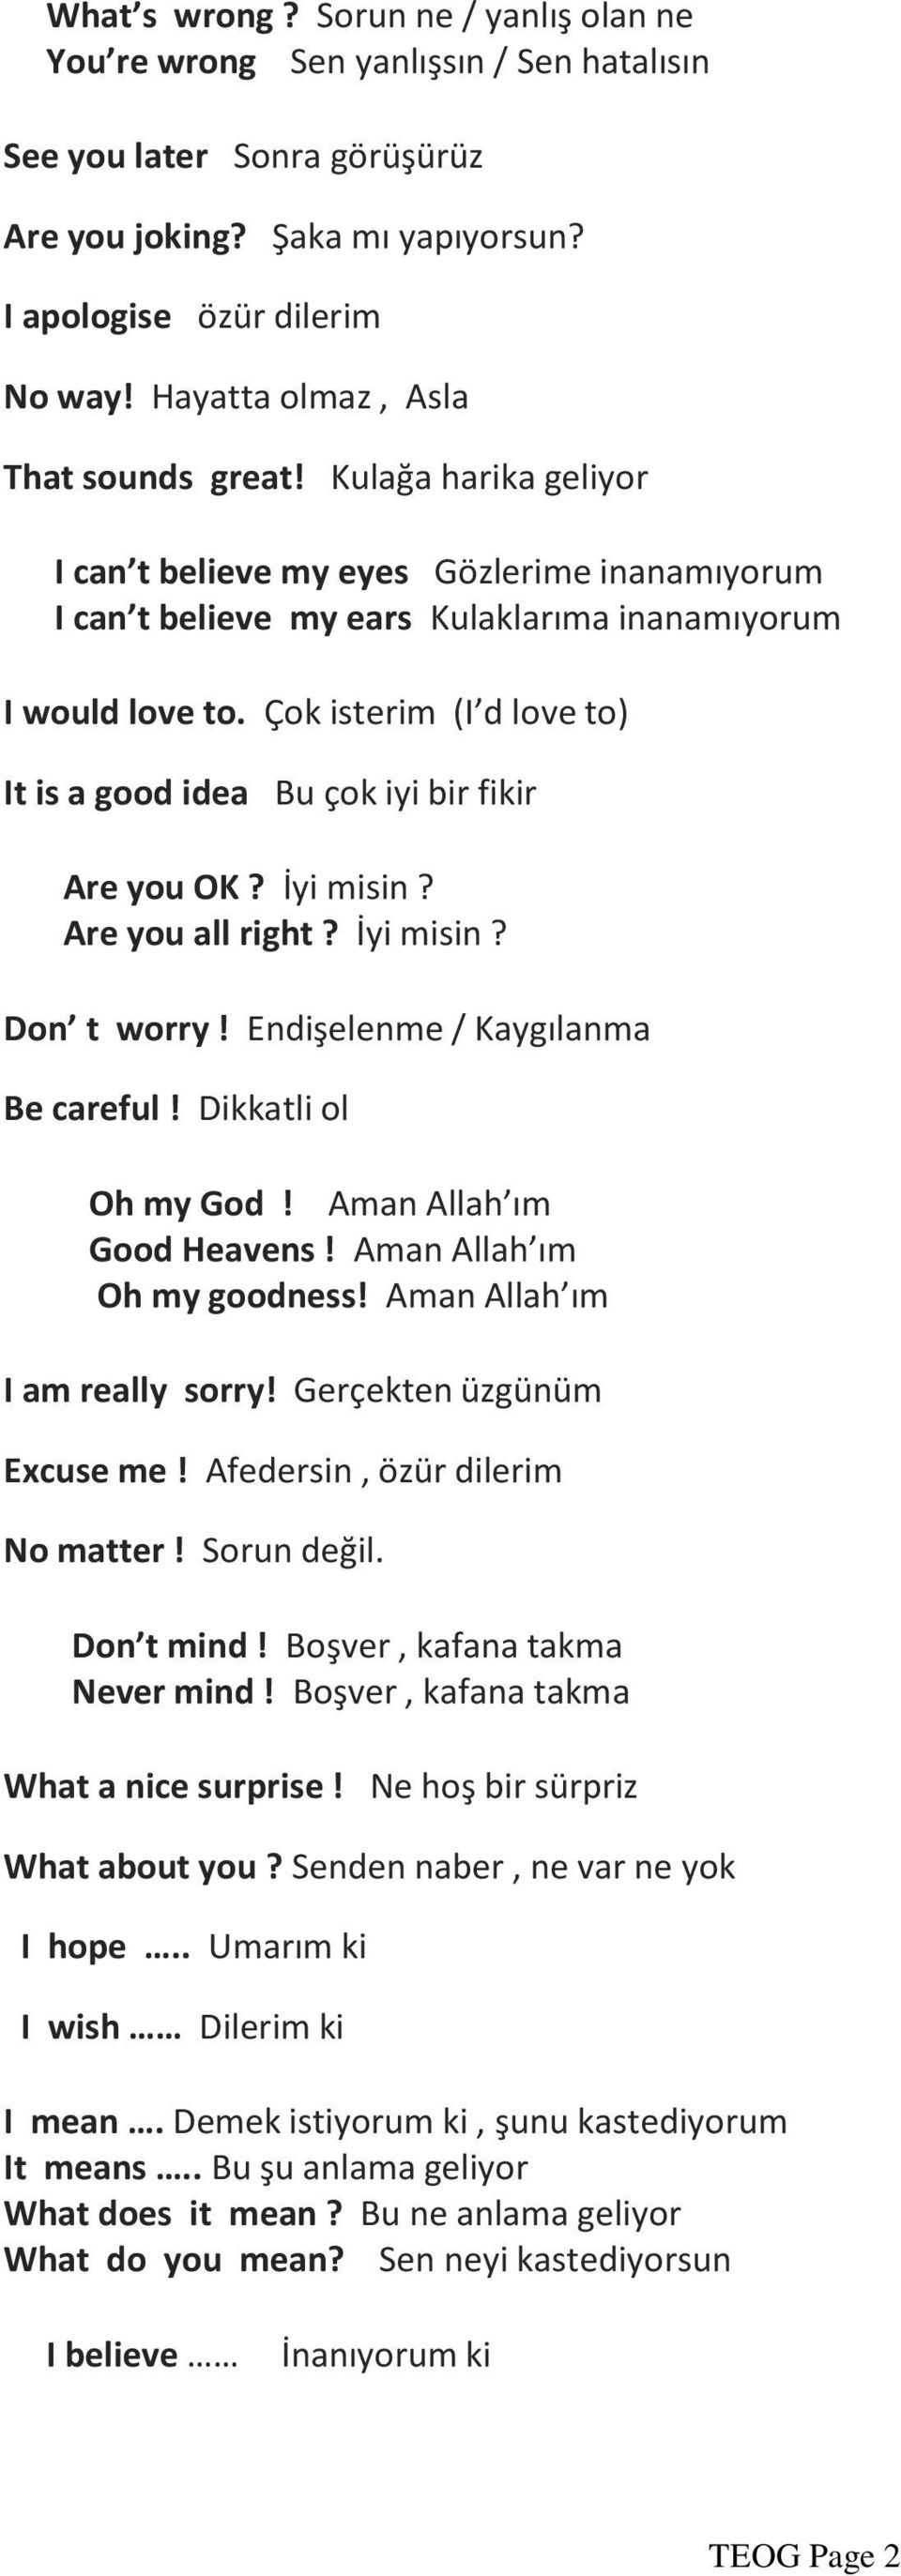 Çok isterim (I d love to) It is a good idea Bu çok iyi bir fikir Are you OK? İyi misin? Are you all right? İyi misin? Don t worry! Endişelenme / Kaygılanma Be careful! Dikkatli ol Oh my God!